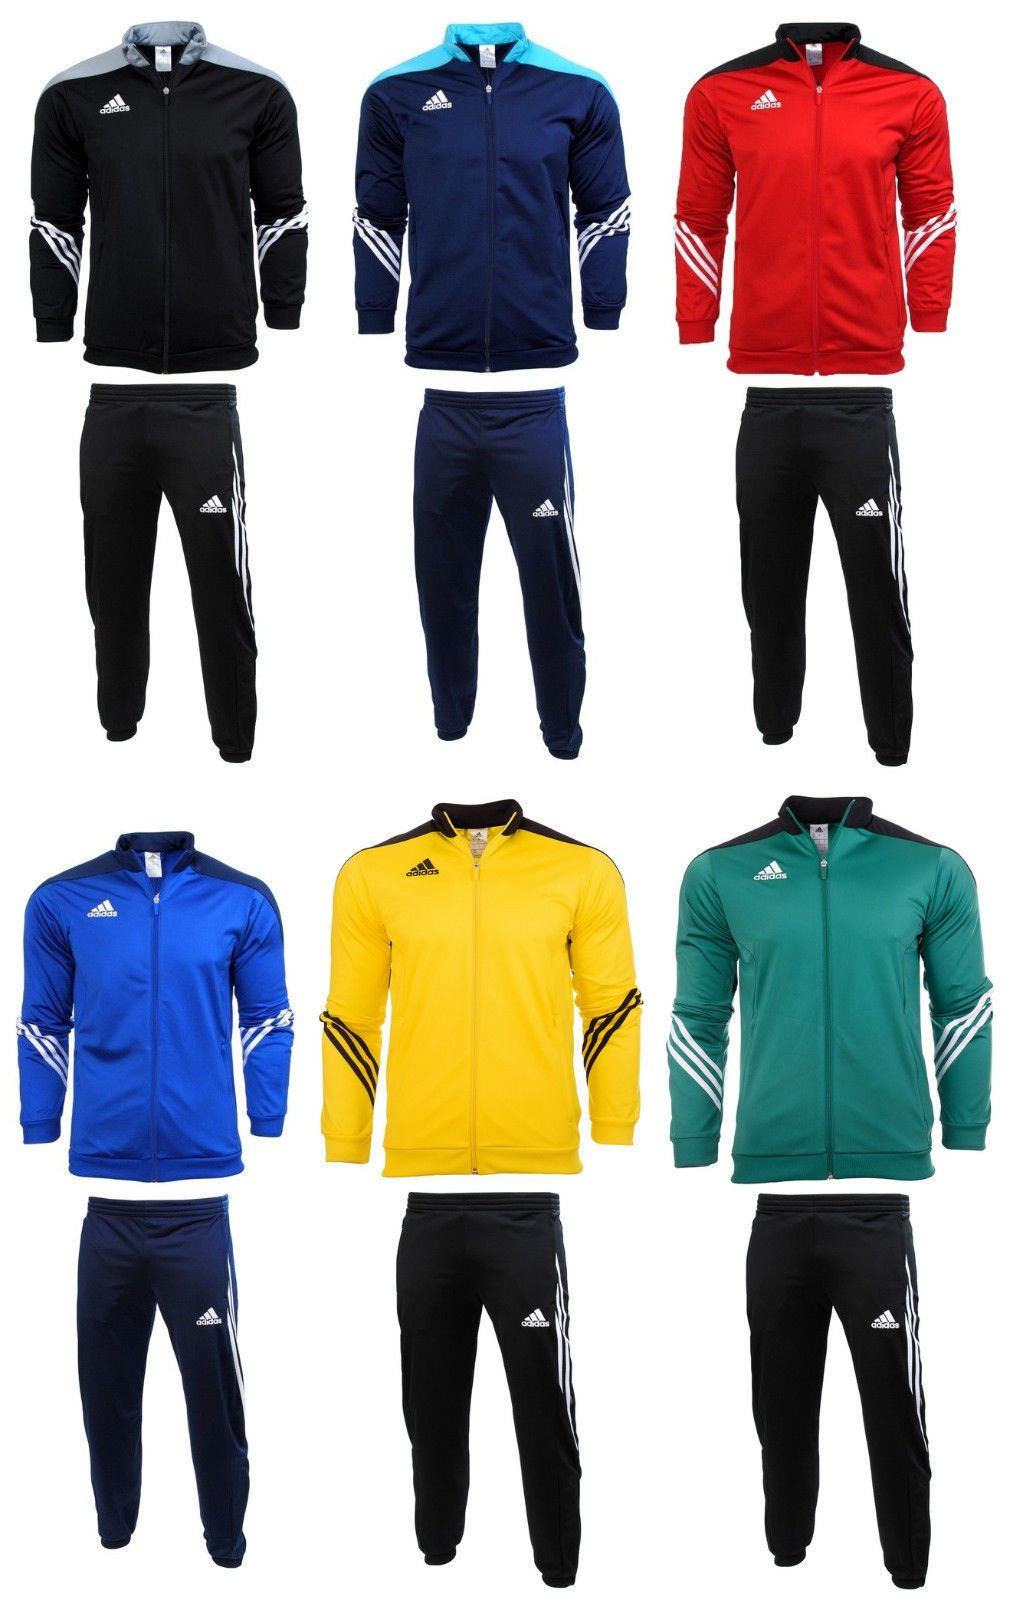 5936e6788f38 Adidas Sereno Junior Boys Kids Full Zip Tracksuit Top Jogging Bottoms  Football